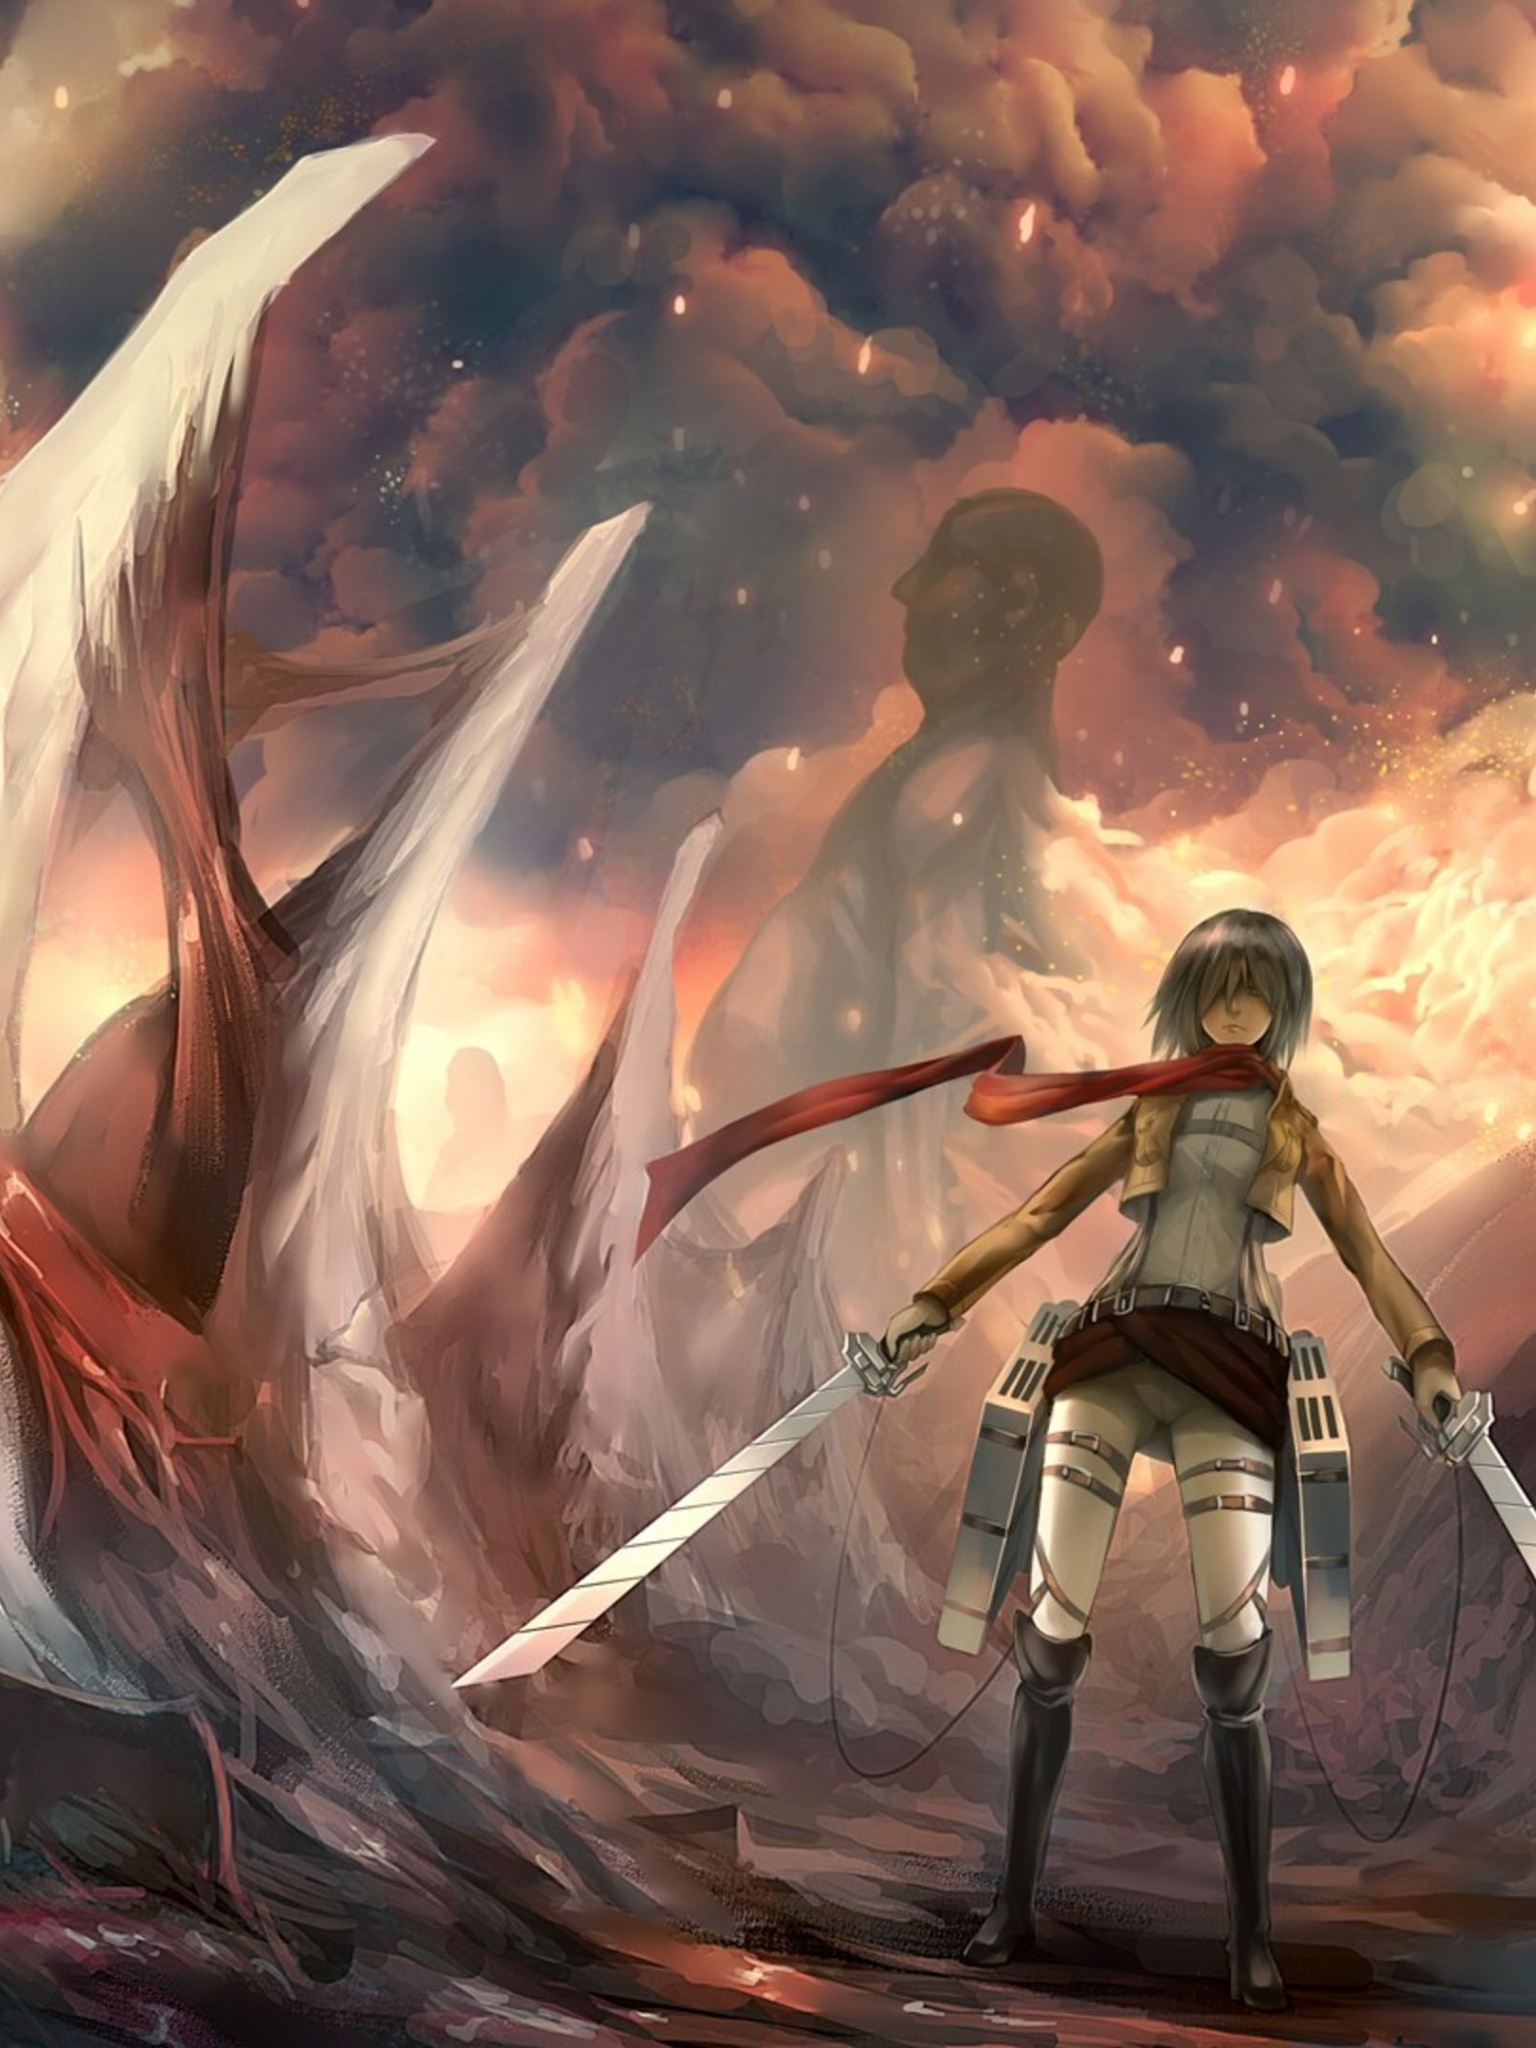 4k Hd Attack On Titan Wallpapers Images Wallpprscom Attack On Titan Wallpaper 4k 2874030 Hd Wallpaper Backgrounds Download